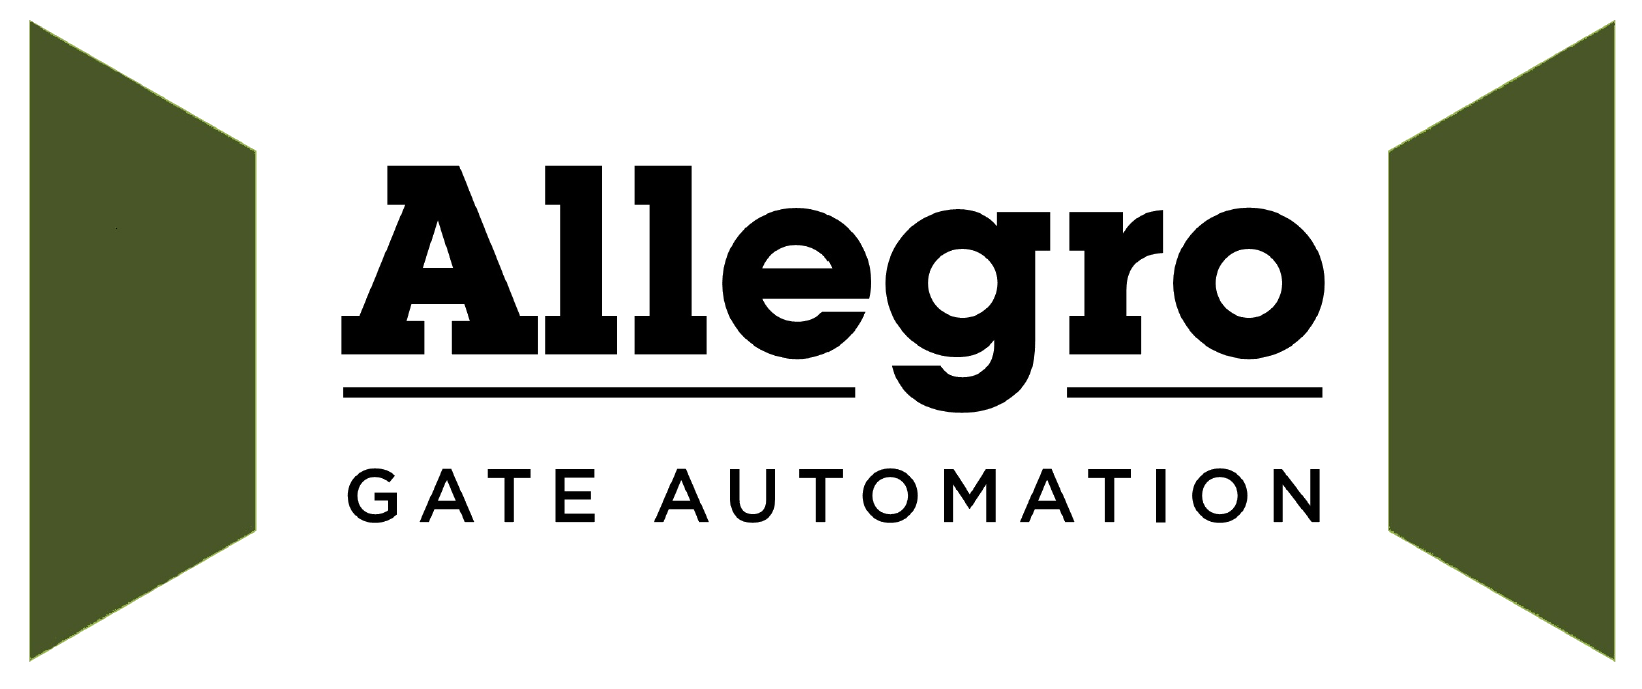 Allegro Gate Automation Pty. Ltd. logo